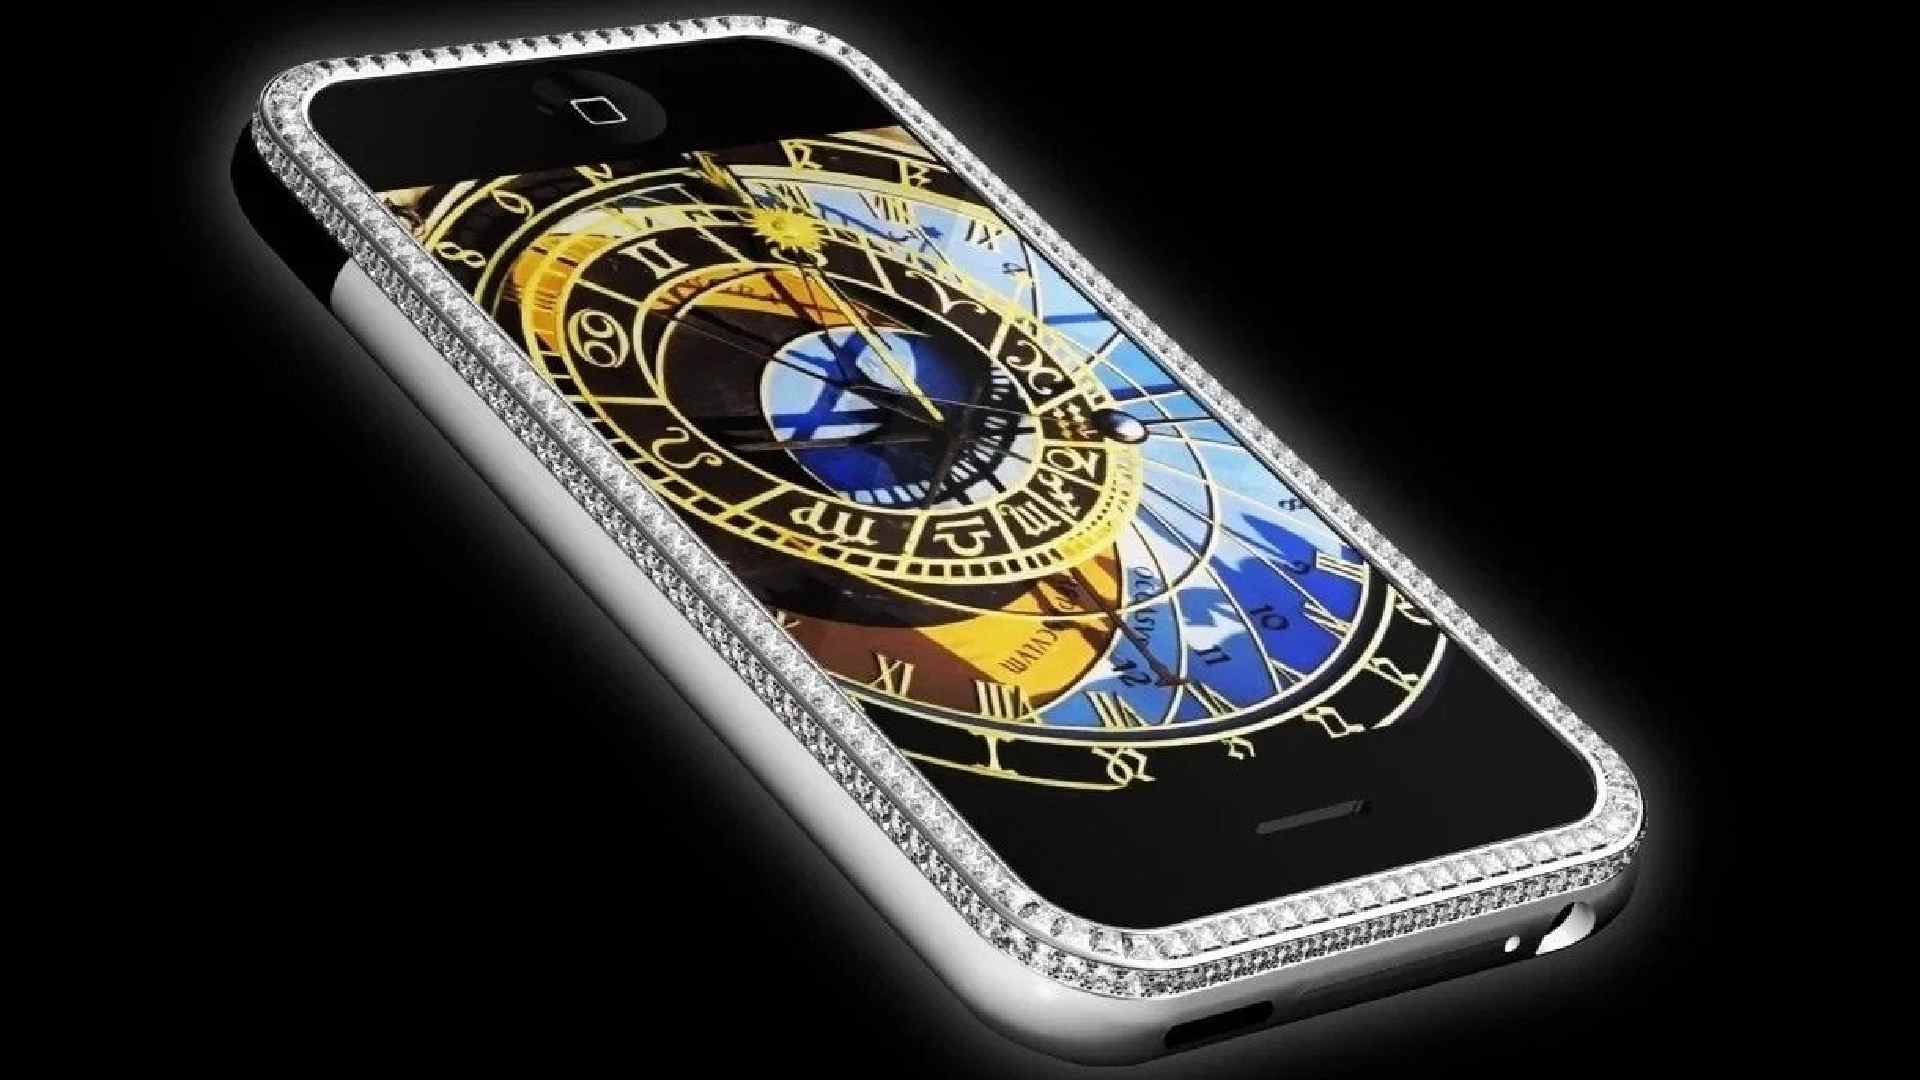 Most Expensive Phones In The World (List)